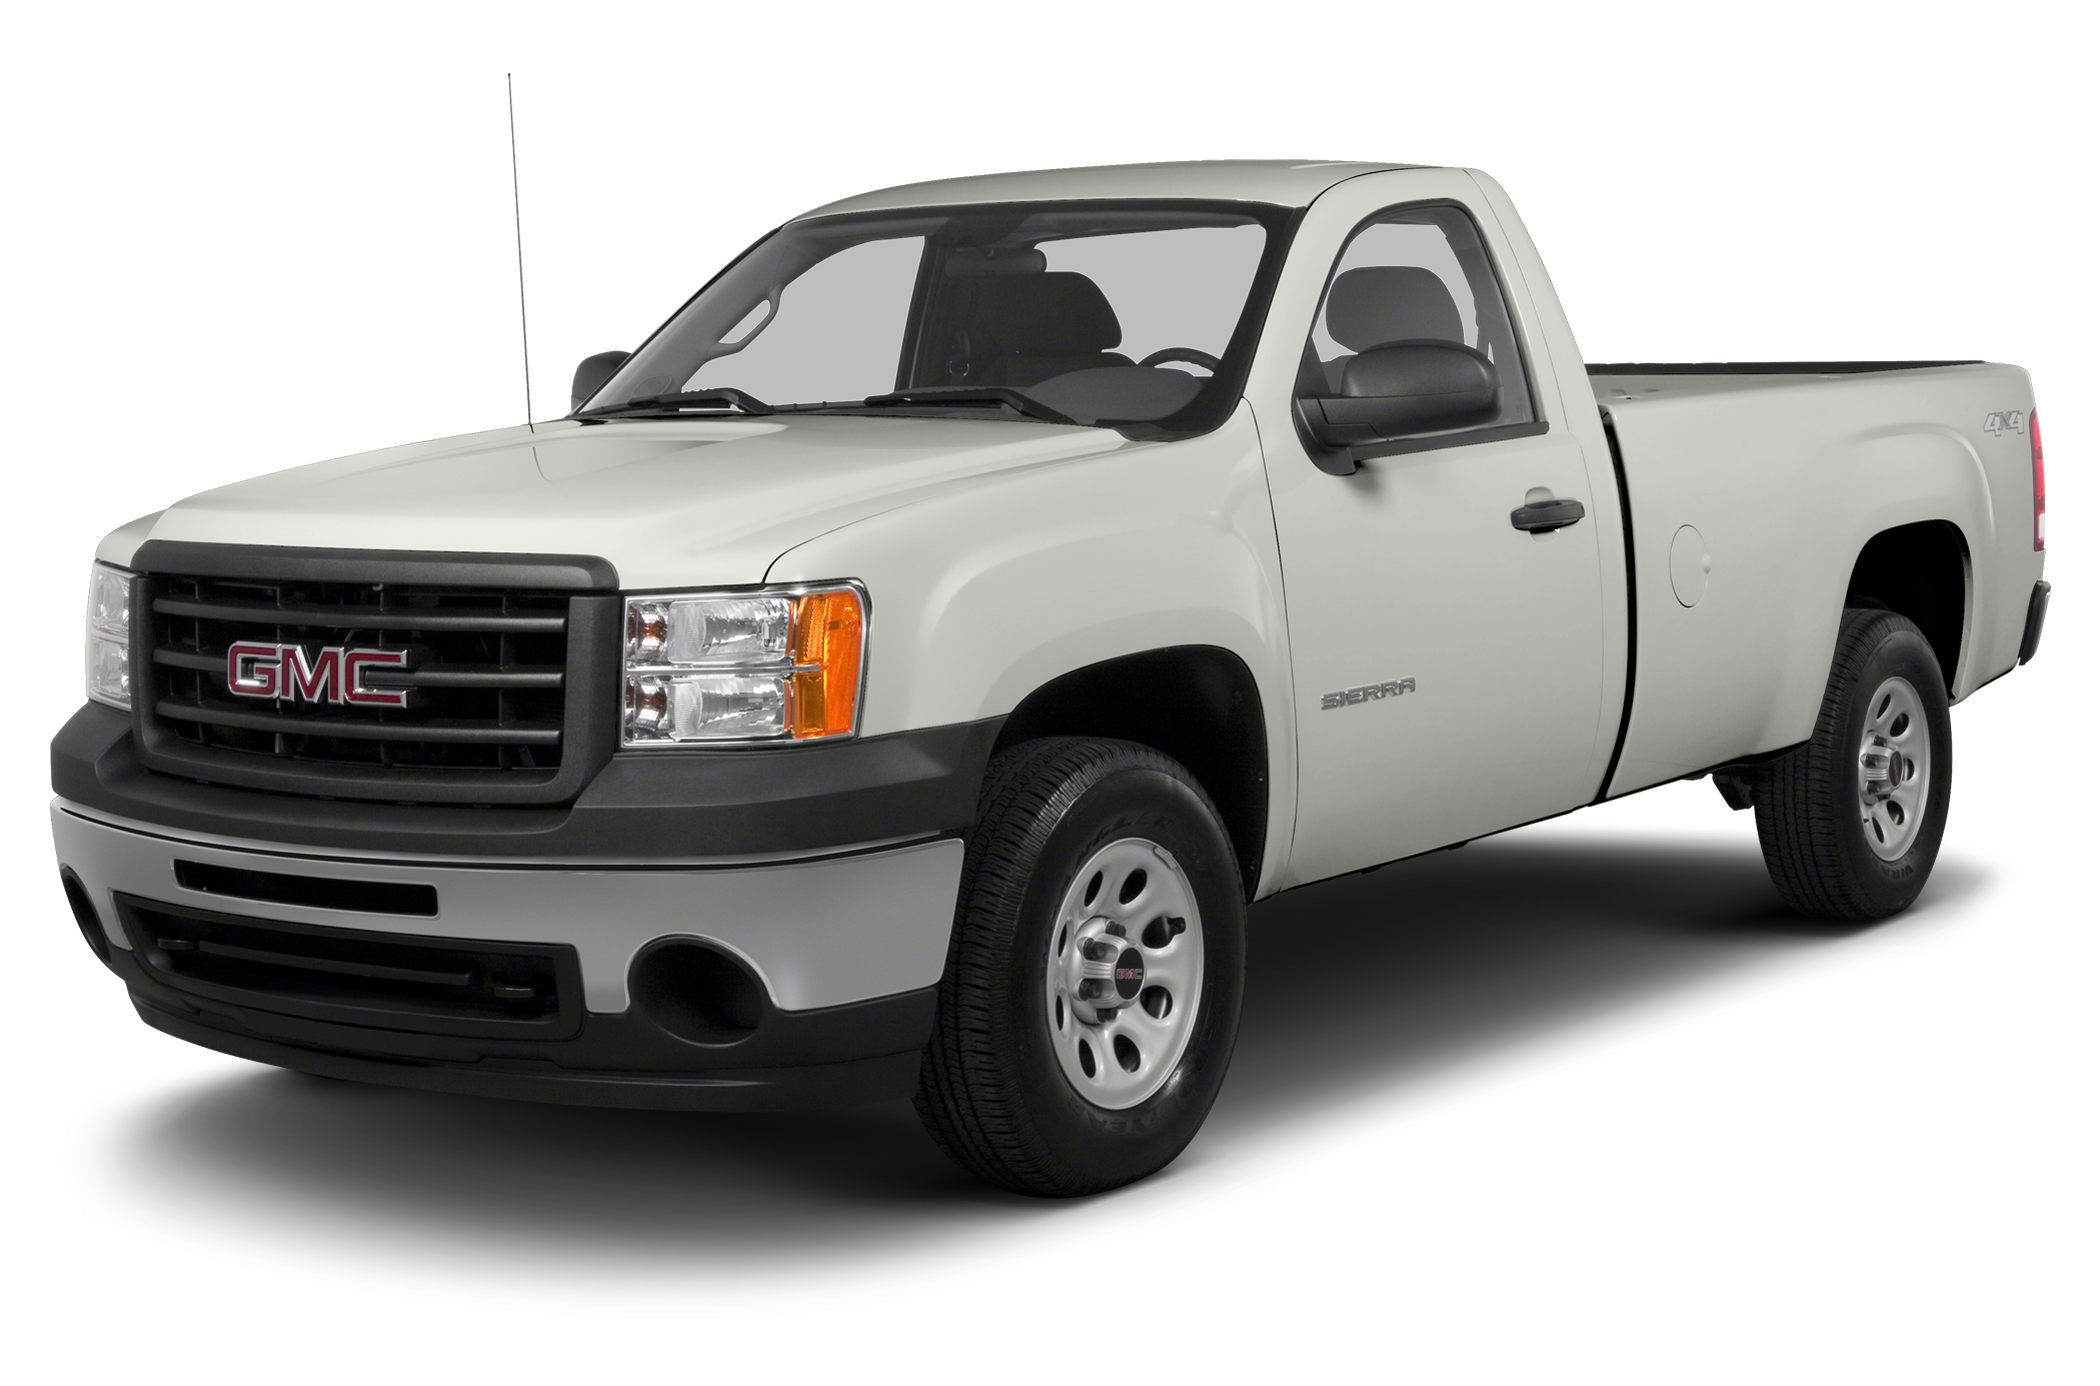 2013 Gmc Sierra 1500 Sle1 4x4 Regular Cab 8 Ft Box 133 In Wb Specs And Prices